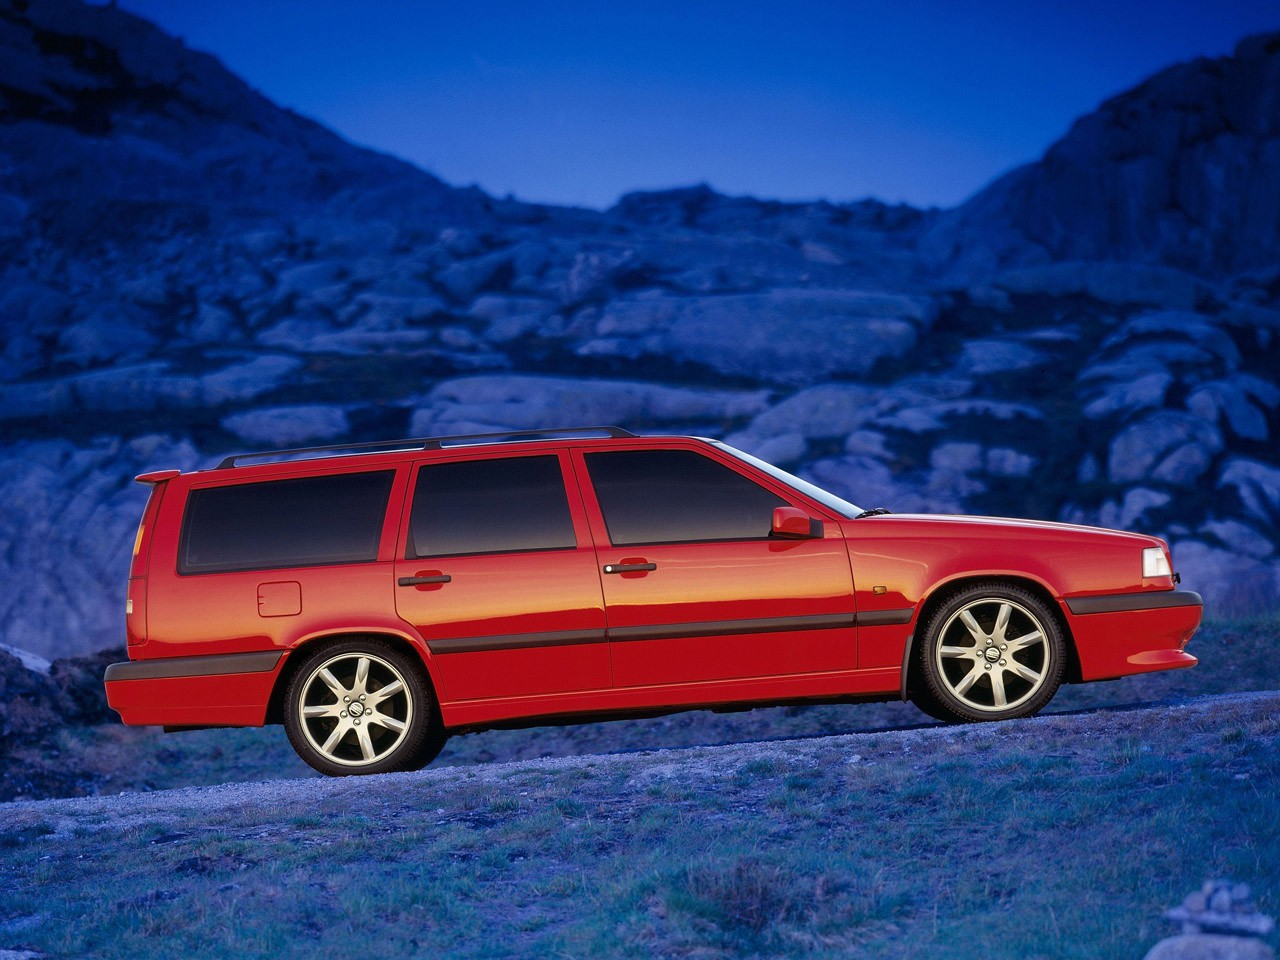 VOLVO 850 Estate R - 1994, 1995, 1996 - autoevolution